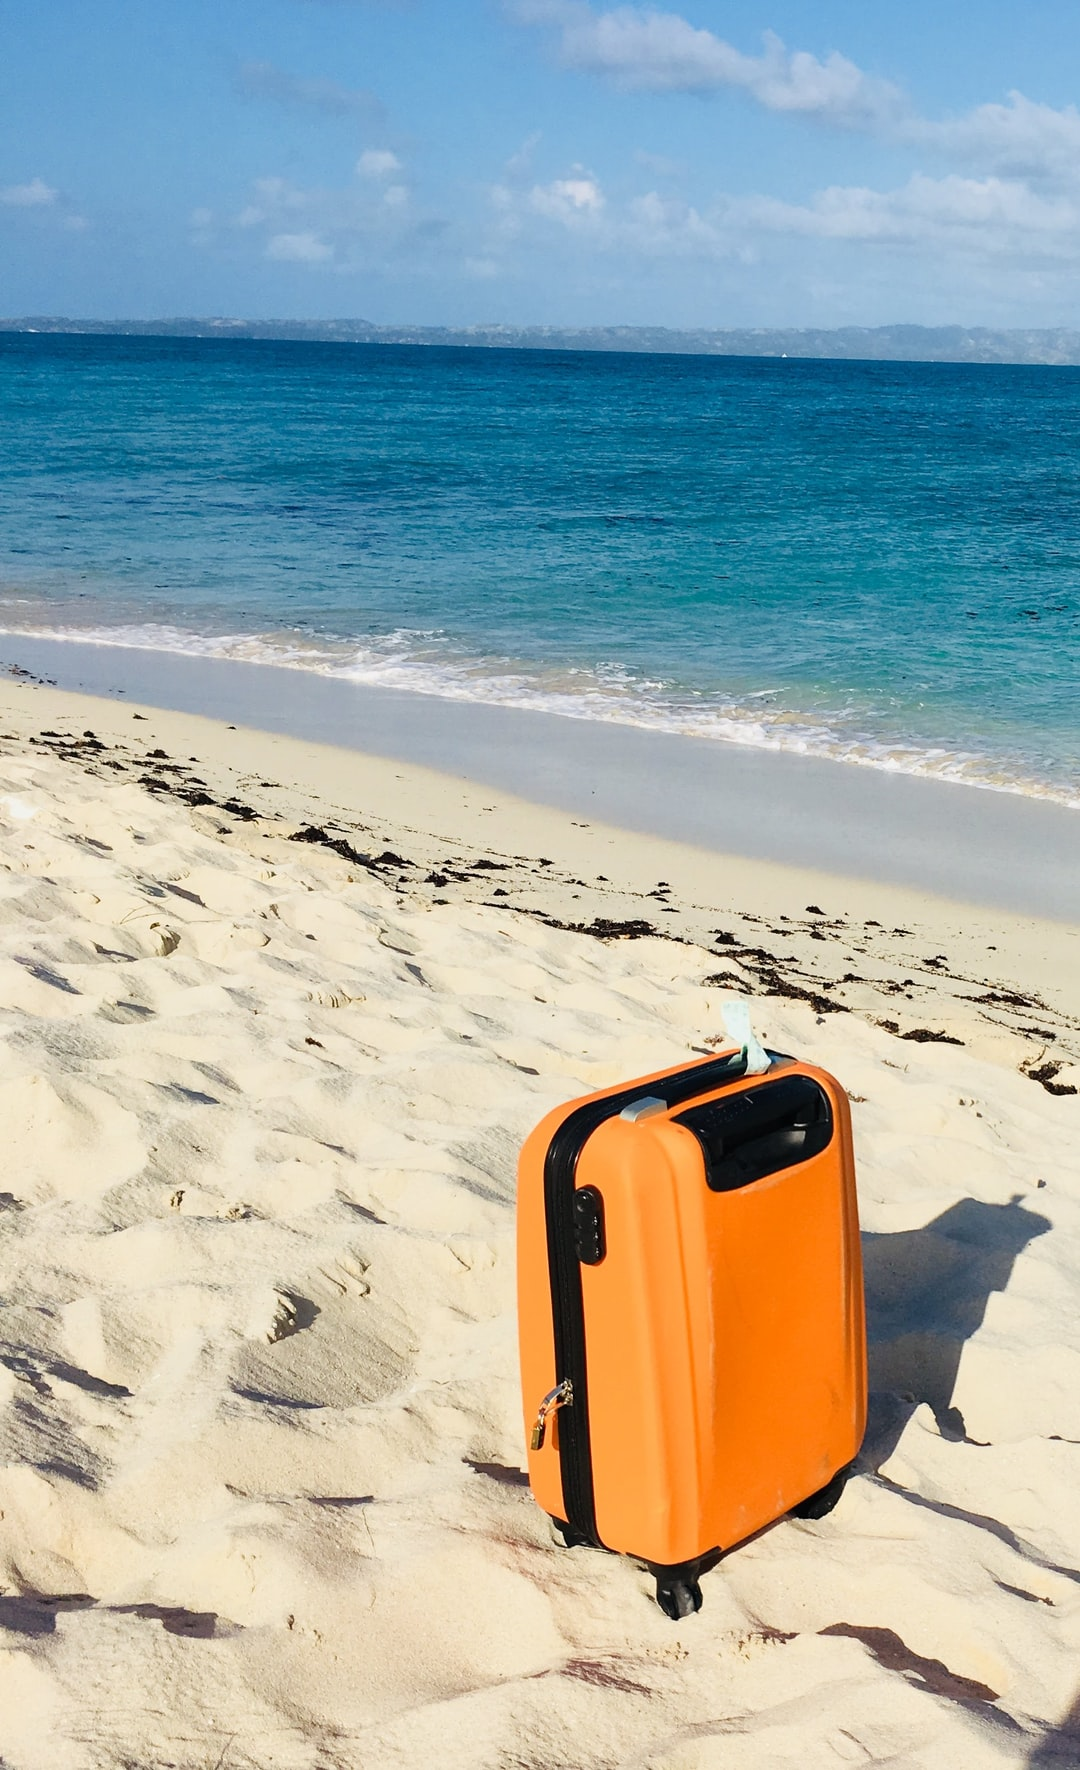 This was my lovely orange carry-on. I loved the color contrast on the beach on the island of Ile a Vache, Haiti.